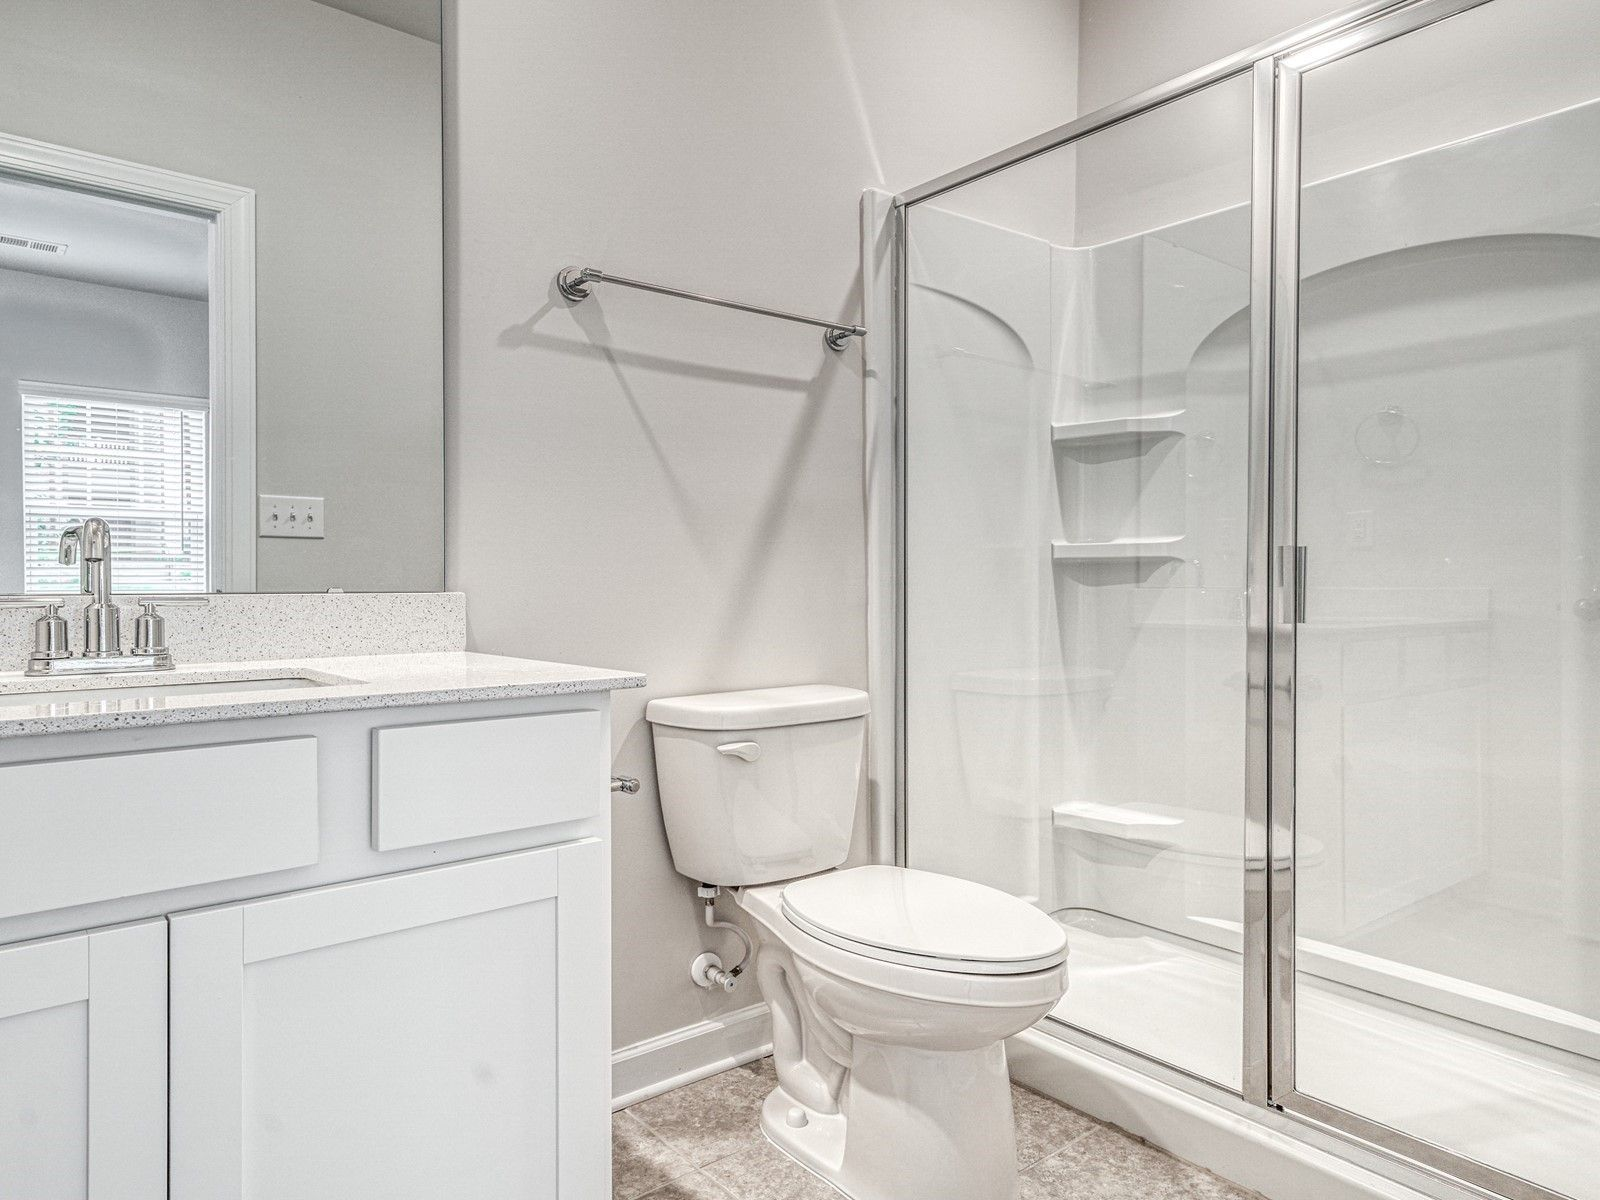 Bathroom featured in the Somerset By Meritage Homes in Charlotte, NC